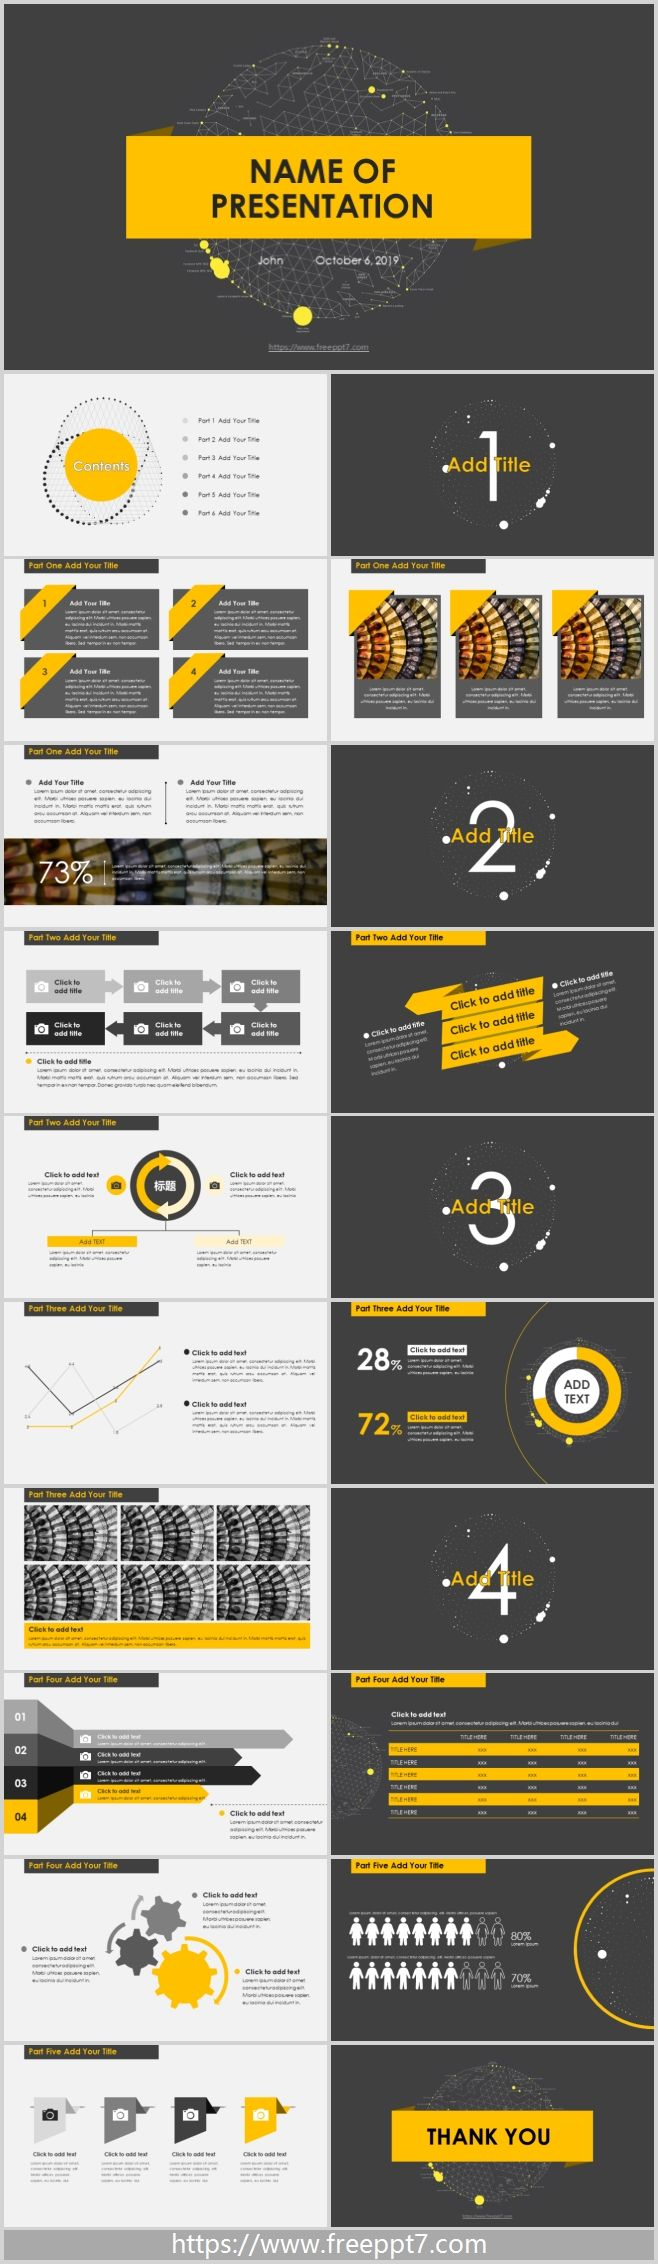 Black And Yellow Powerpoint Templates Best Powerpoint